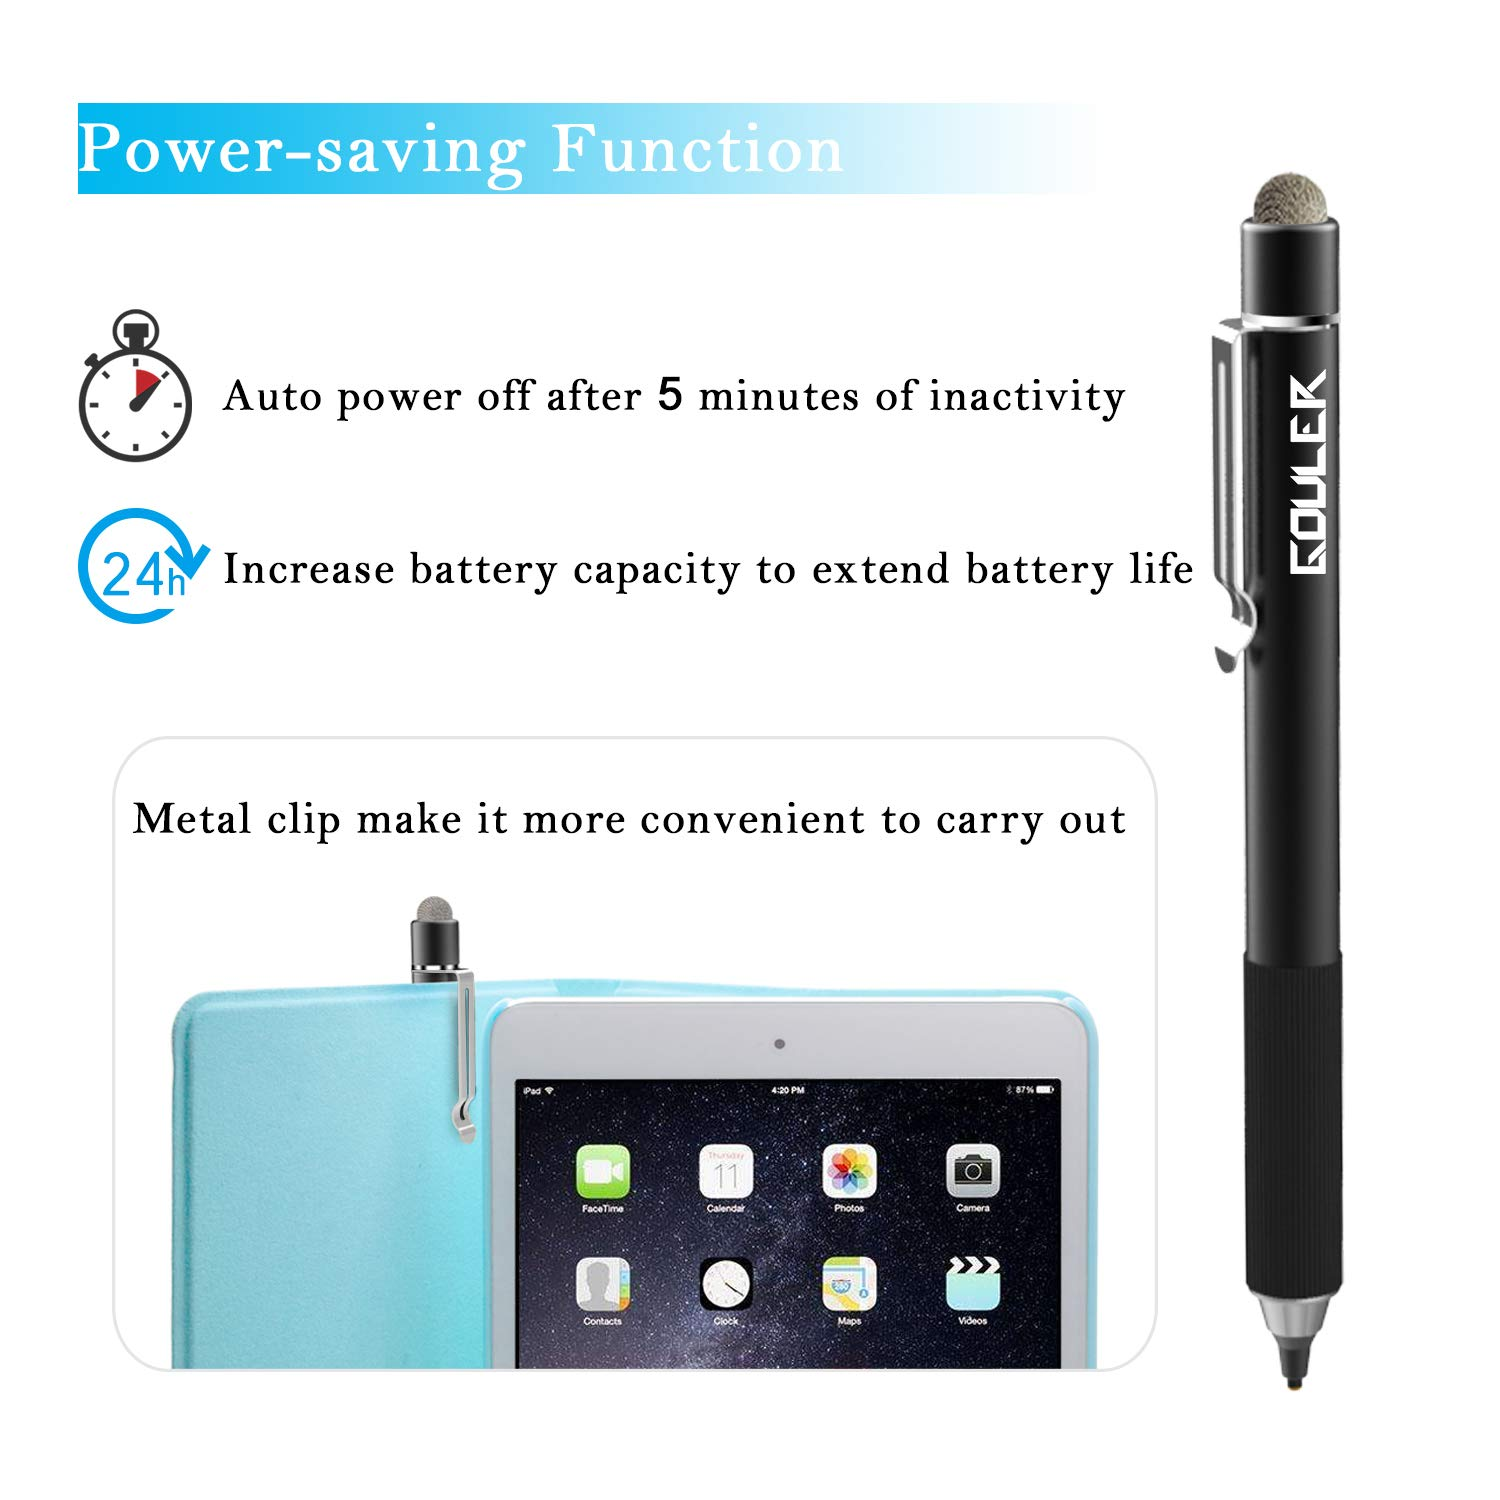 Gouler High-precision Stylus Pen with 2 in 1 Copper & Mesh Fine Tip Rechargeable Capacitive Digital Pen for iPad, iPhone, Android and Most of Touch Screen Devices by Gouler (Image #3)